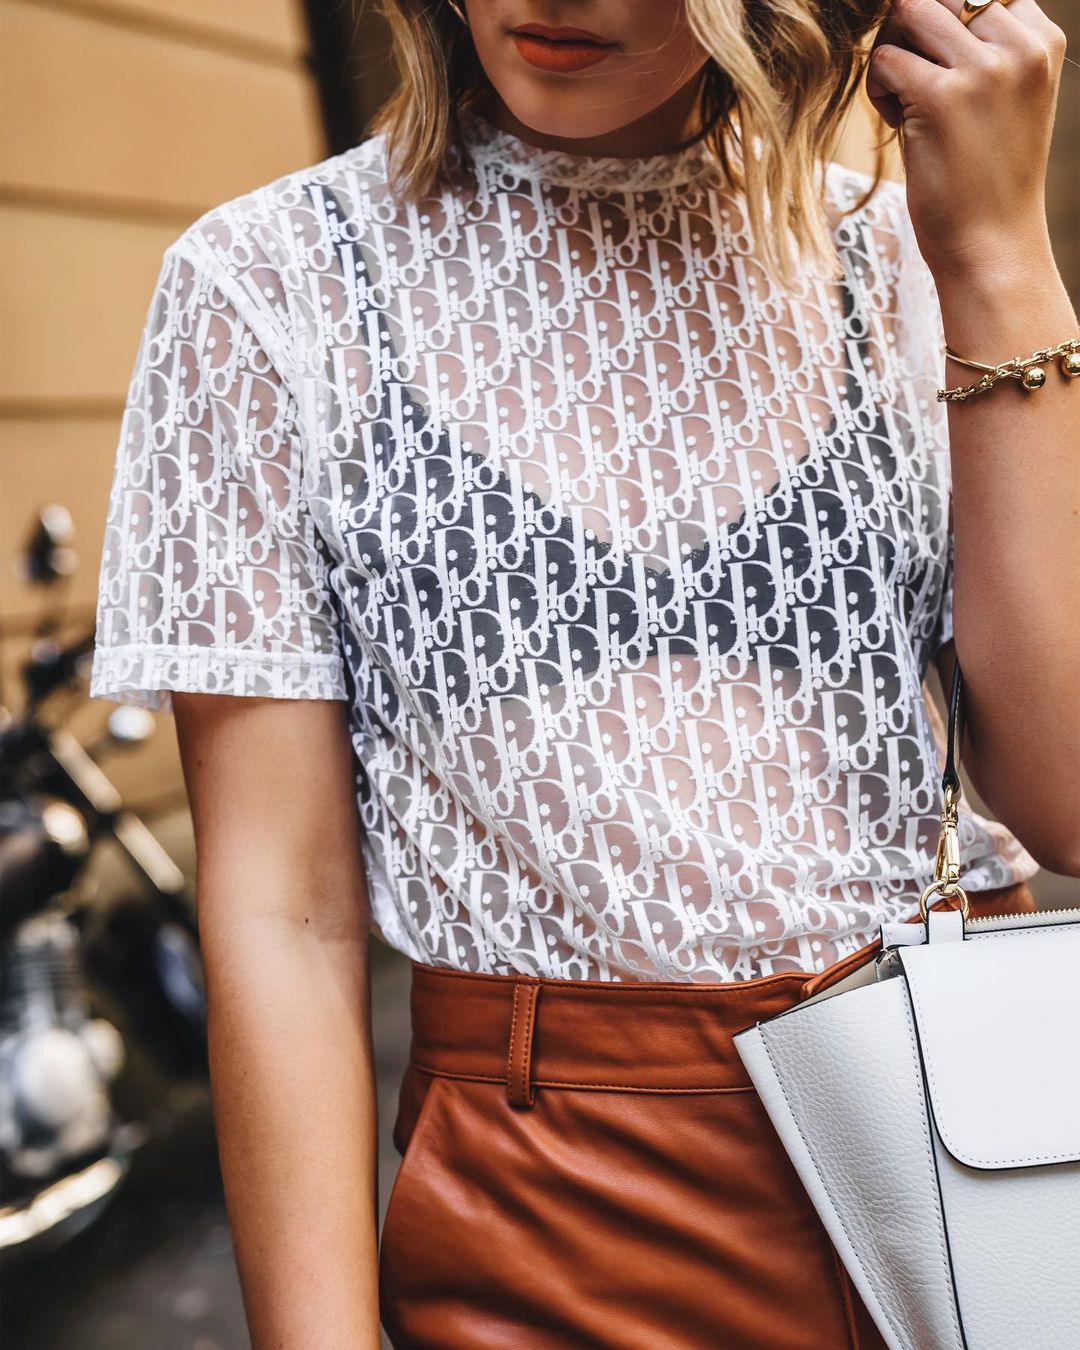 Dior Transparent white logo top styled